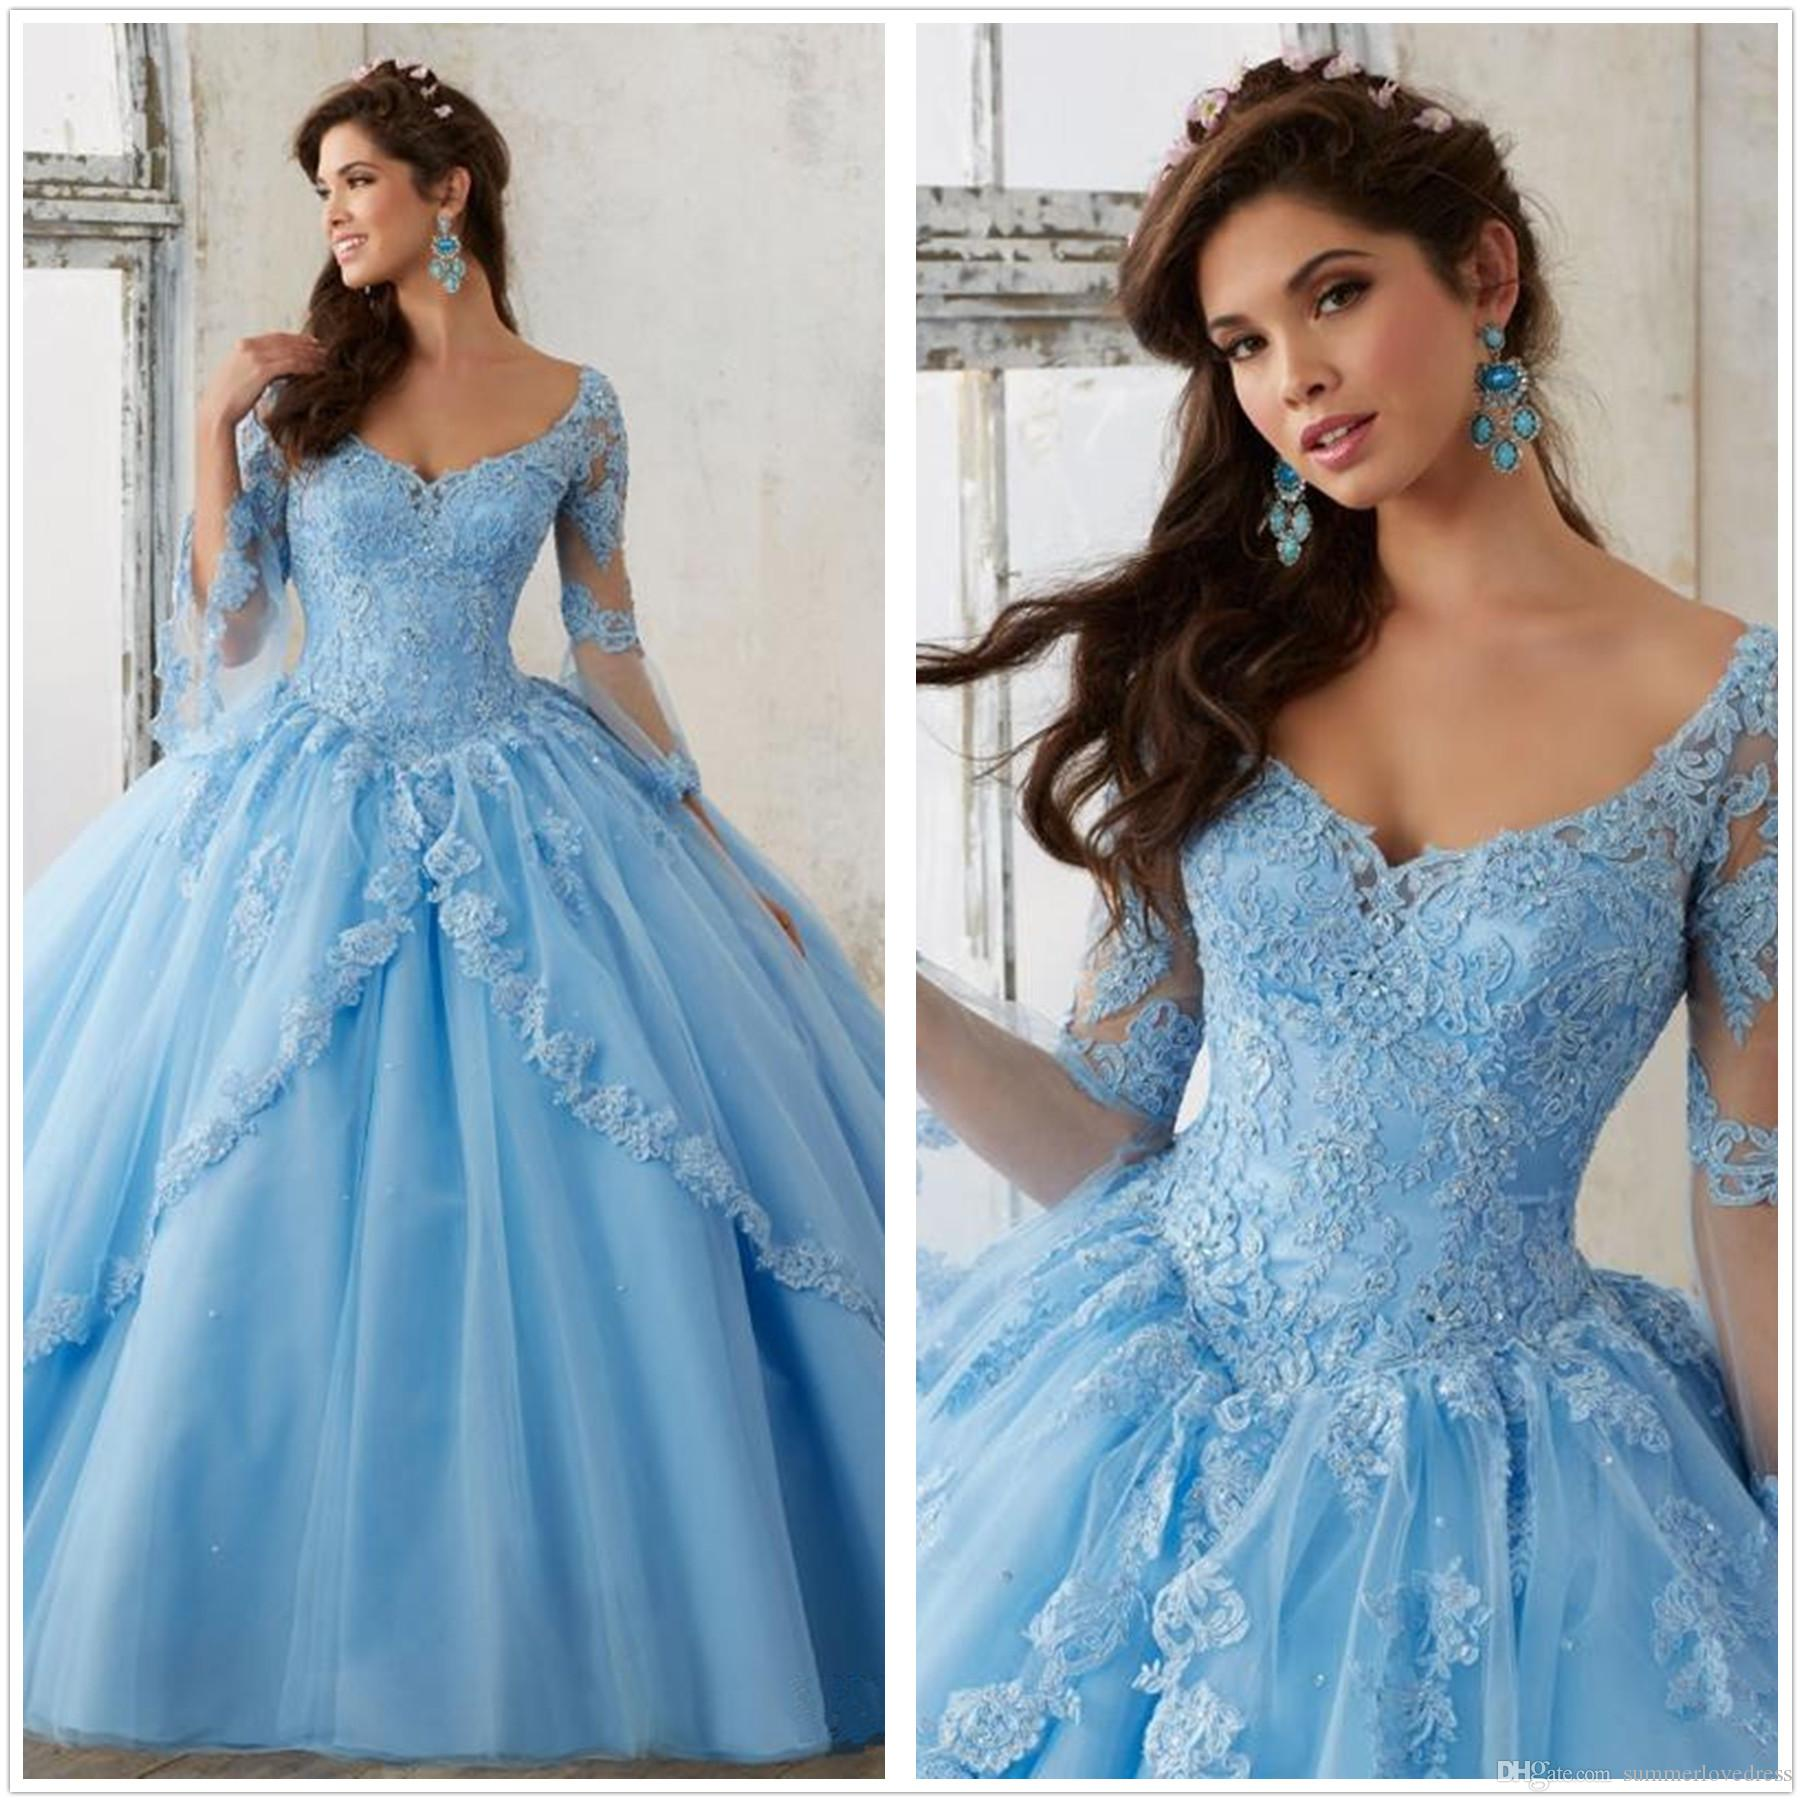 cc1b45b043 2018 Light Sky Blue Ball Gown Quinceanera Dresses V Neck Long Sleeves Tulle  Lace Applique Princess Prom Party Dresses For Sweet 16 Girls Maid Of Honor  ...